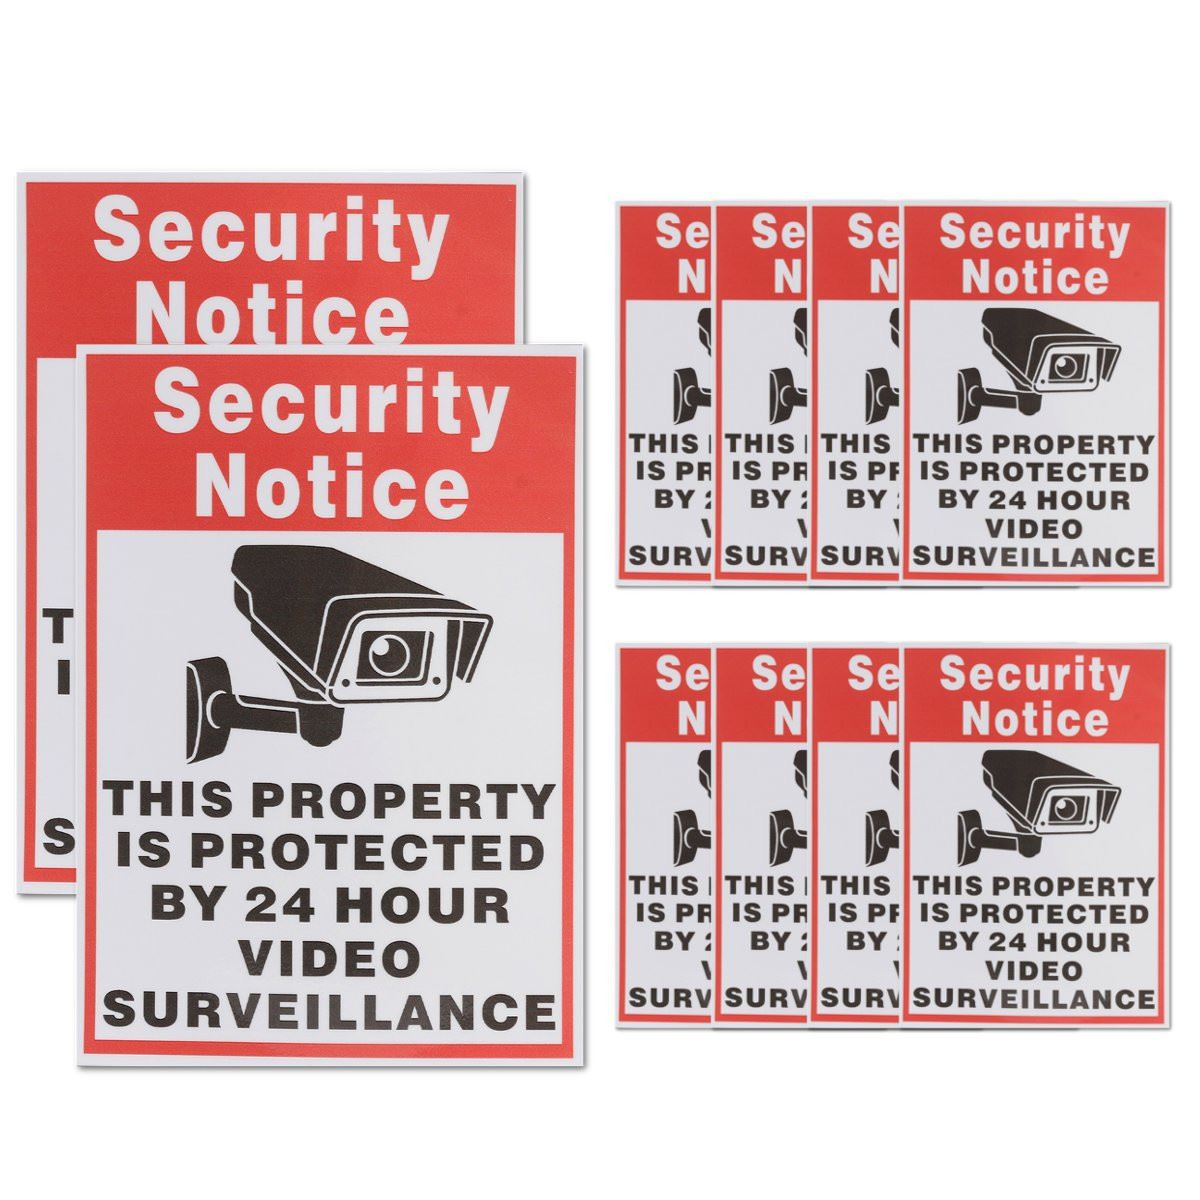 NEW 10pcs/lot Waterproof Sunscreen PVC Home CCTV Video Surveillance Security Camera Alarm Sticker Warning Decal Signs 10pcs lot 200 250mm yellow and black decal sticker warning board 24hr cctv surveillance security camera sticker decal signs